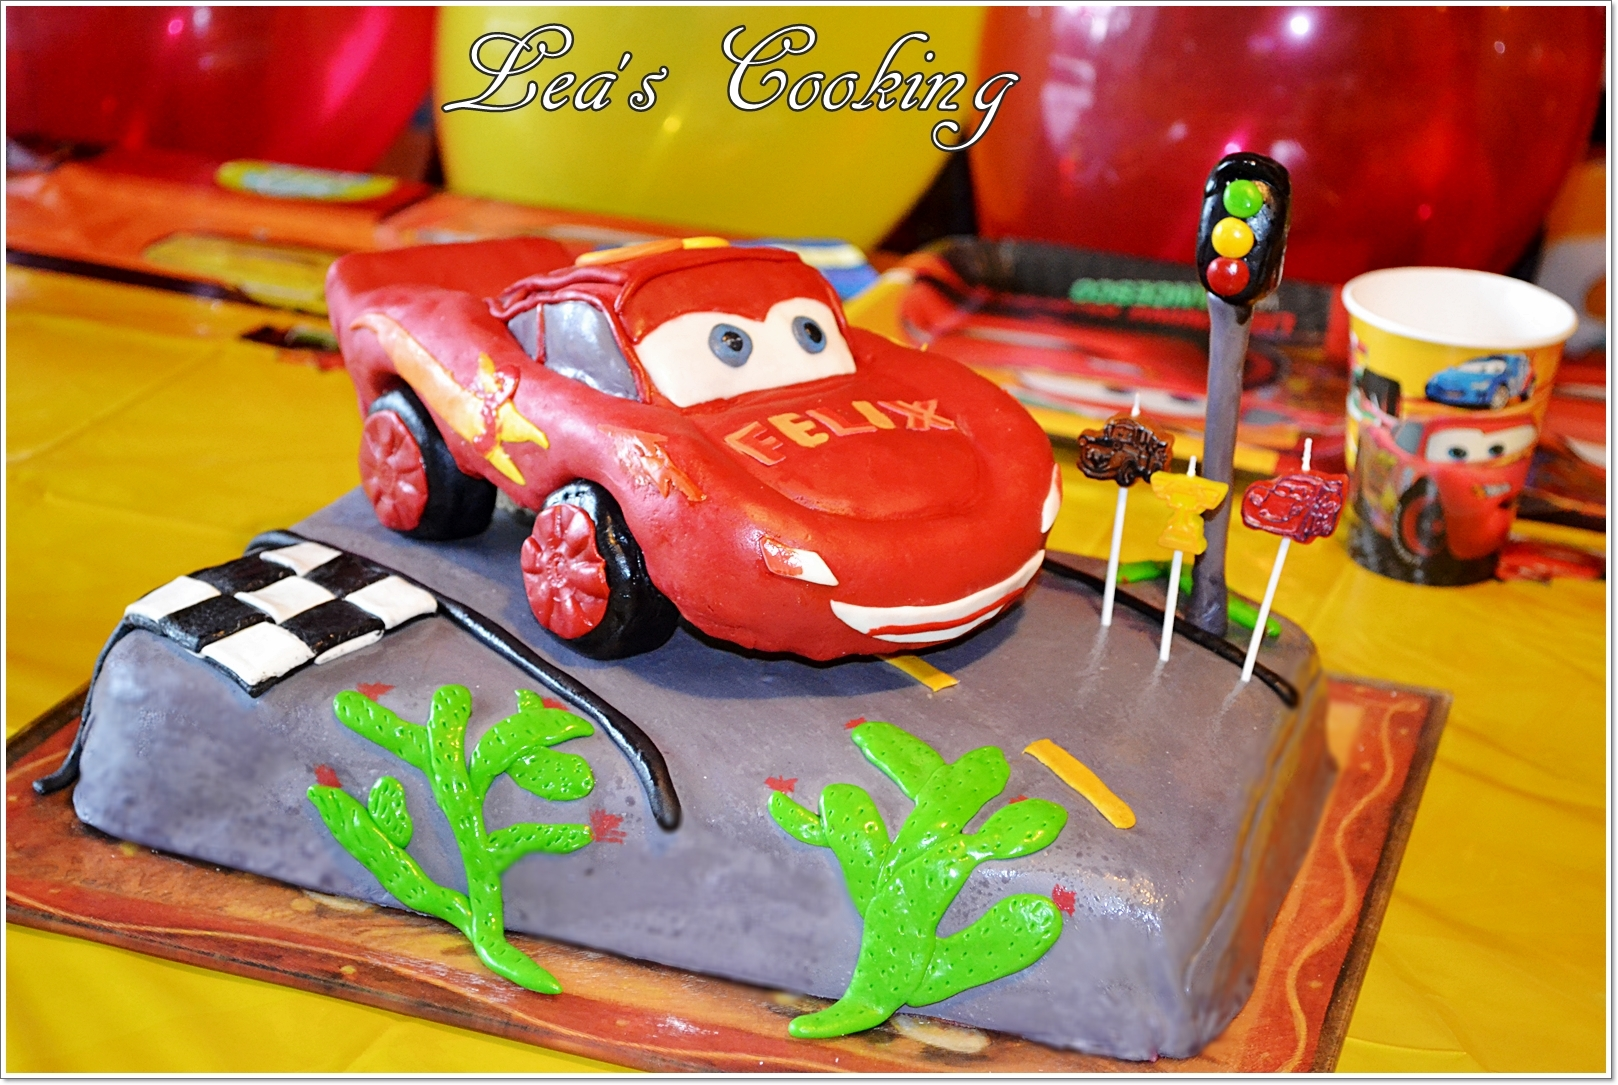 "Inspired by Lightning McQueen from the Disney Movie ""Cars"". Make your kid's birthday cake special. Make a car cake by following these step-by-step instructions at my blog http://leascooking.blogspot.com/2013/01/cars-lightning-mcqueen-cake-topper.html"